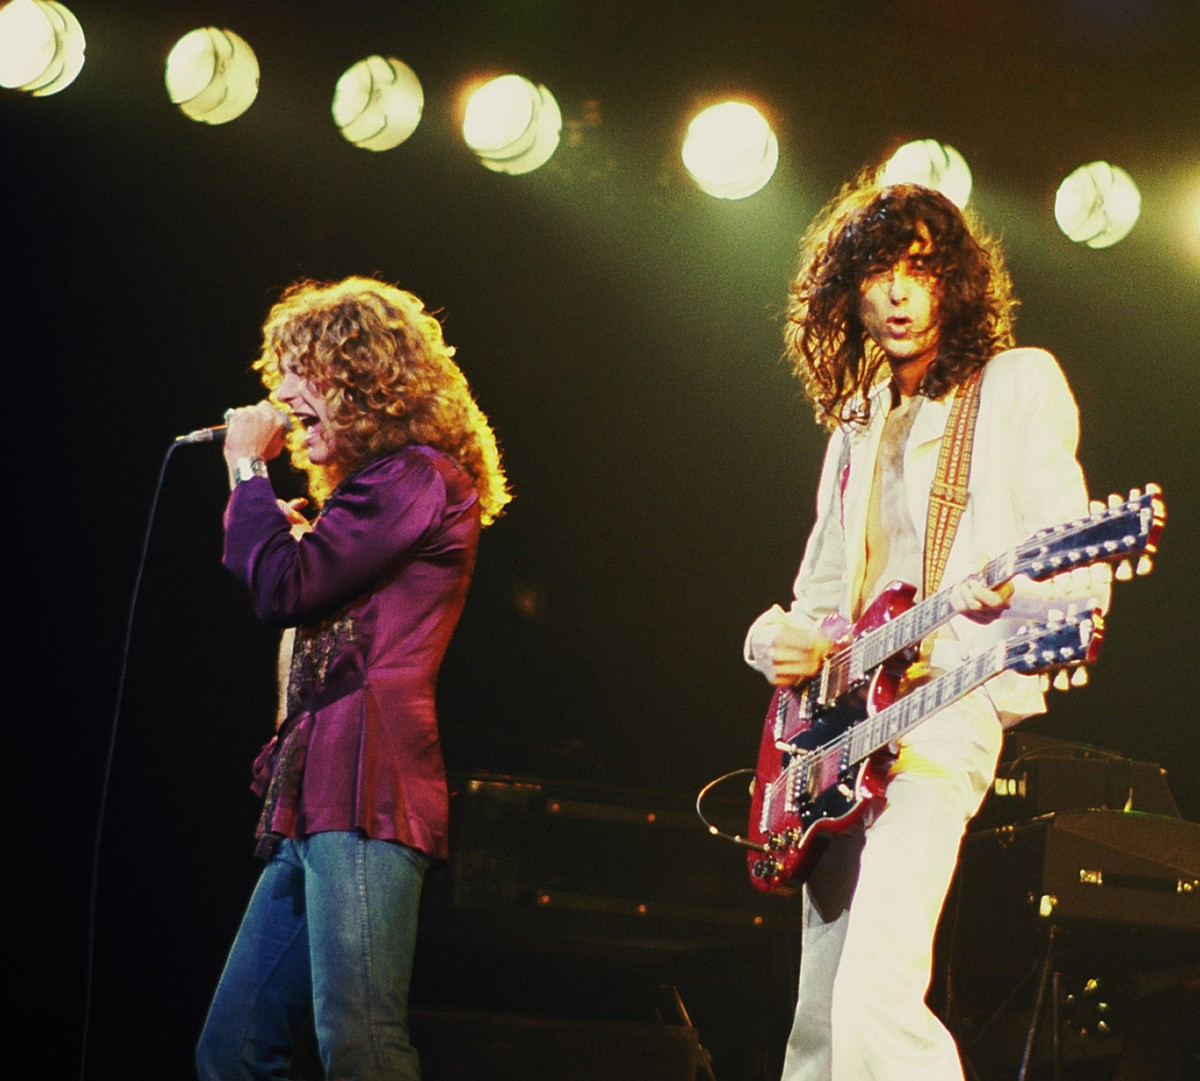 Bad Led Zeppelin Lyrics Living The Led Life 10 Life Lessons You Can Find In